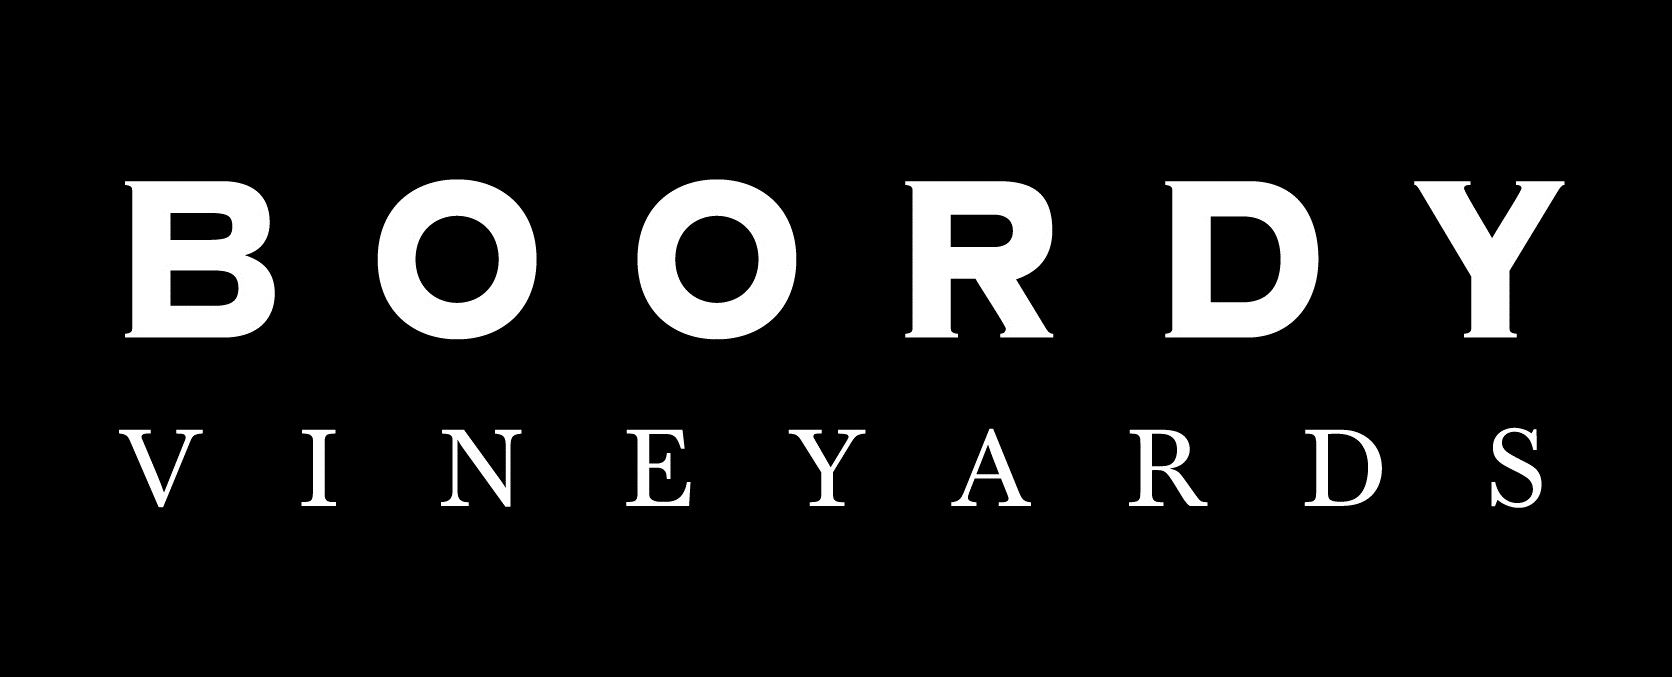 Boordy-logotype_cropped